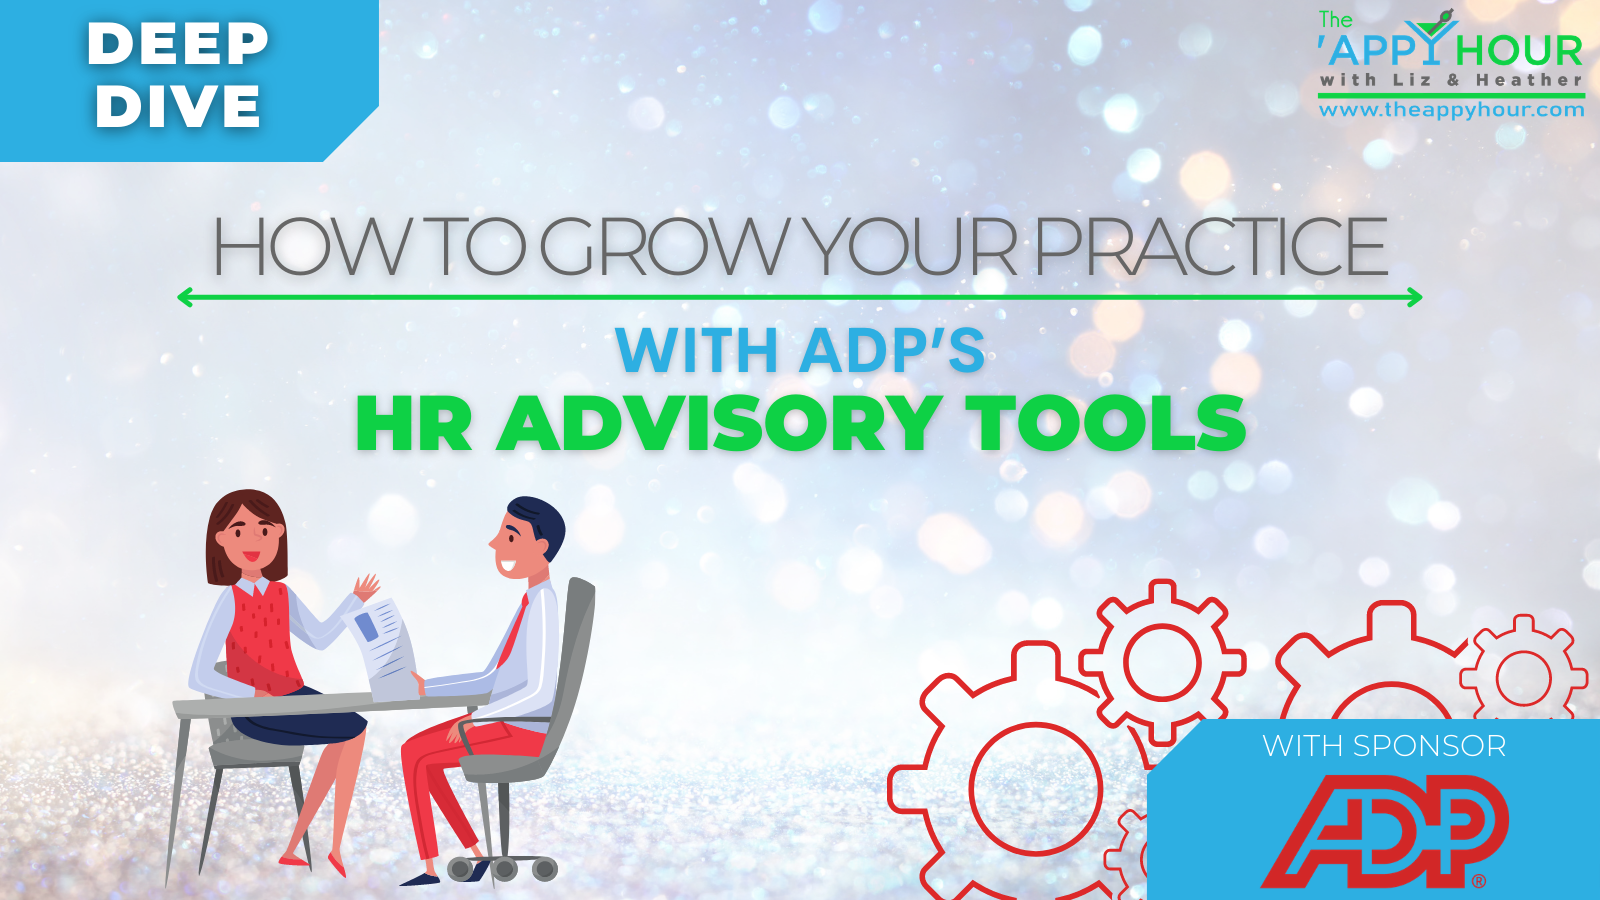 How to Grow Your Practice With ADP's HR Advisory Tools